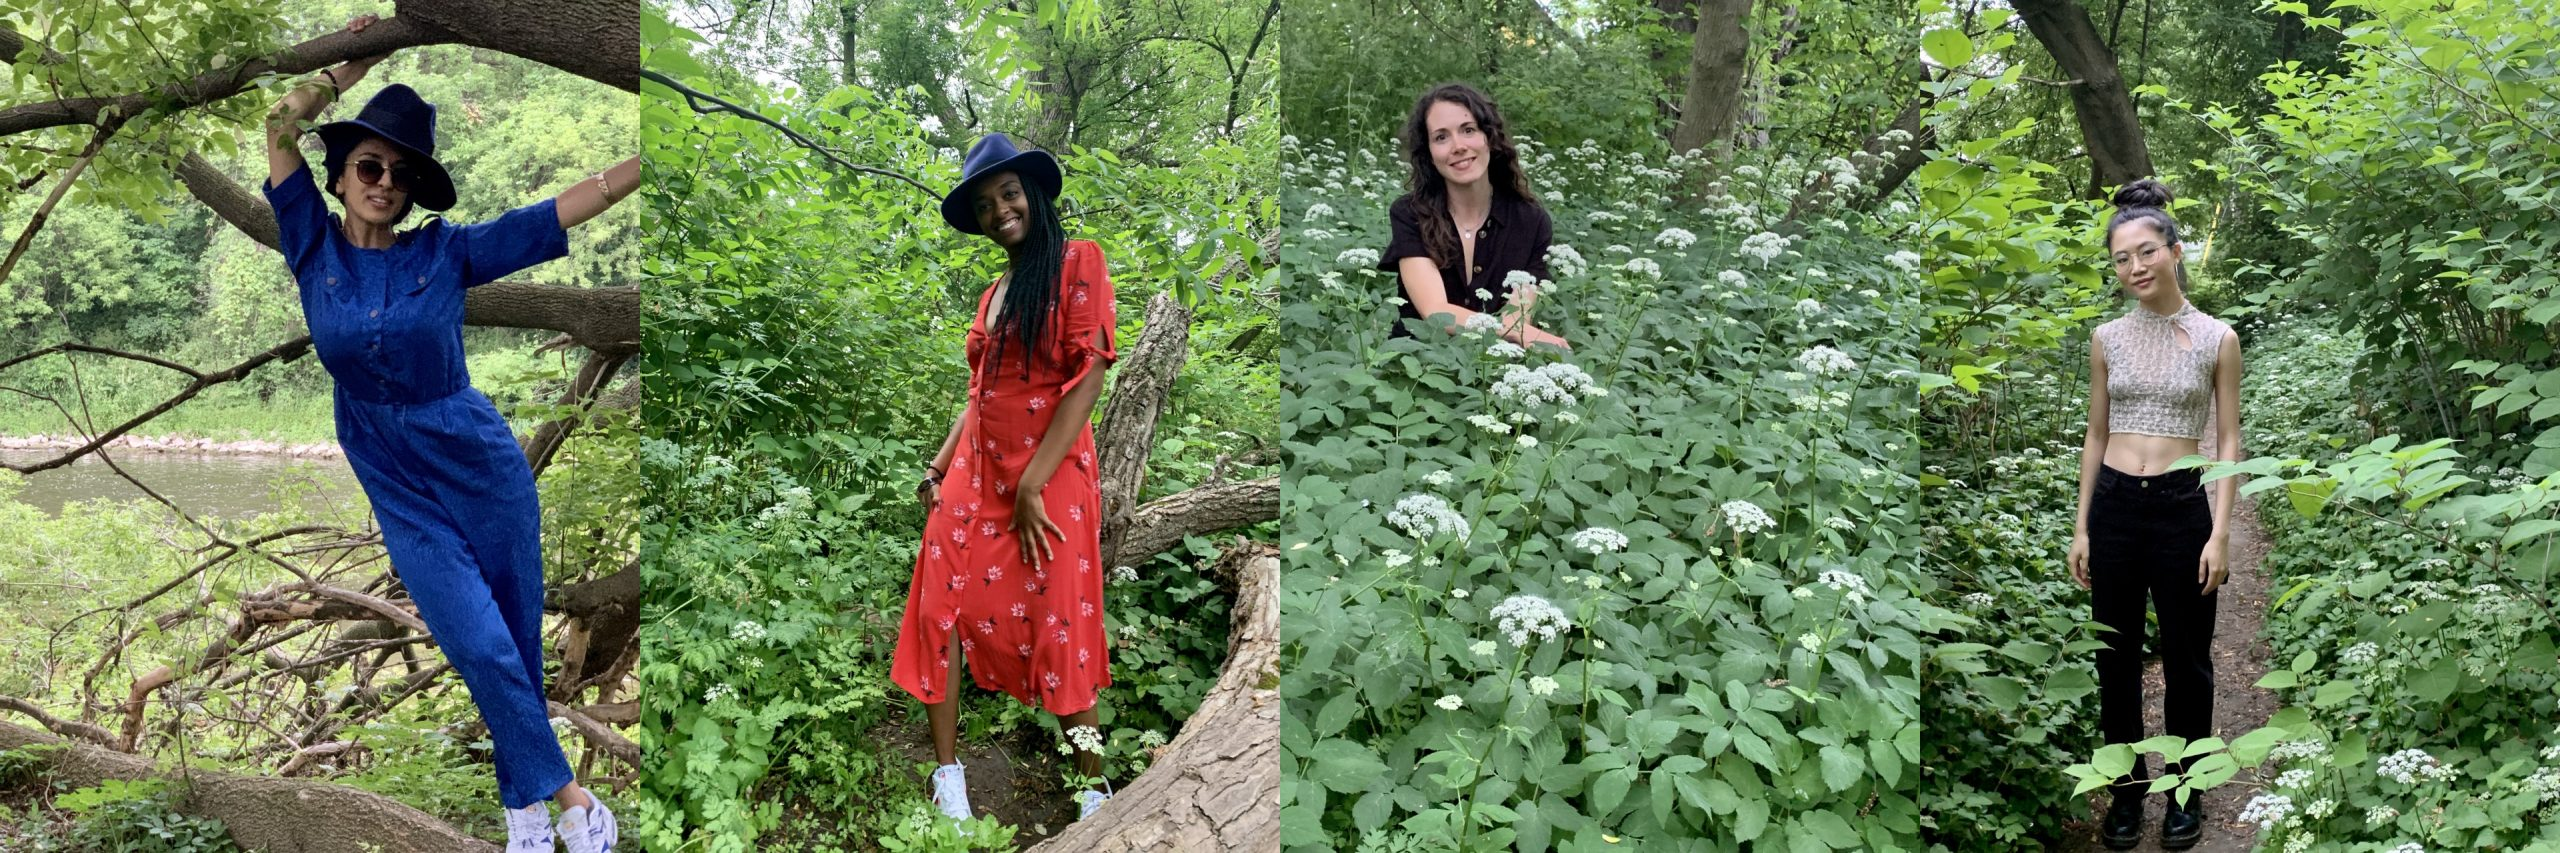 Four photos collaged together, each with a female-identifying person from Rude Girls London featured surrounded by nature.